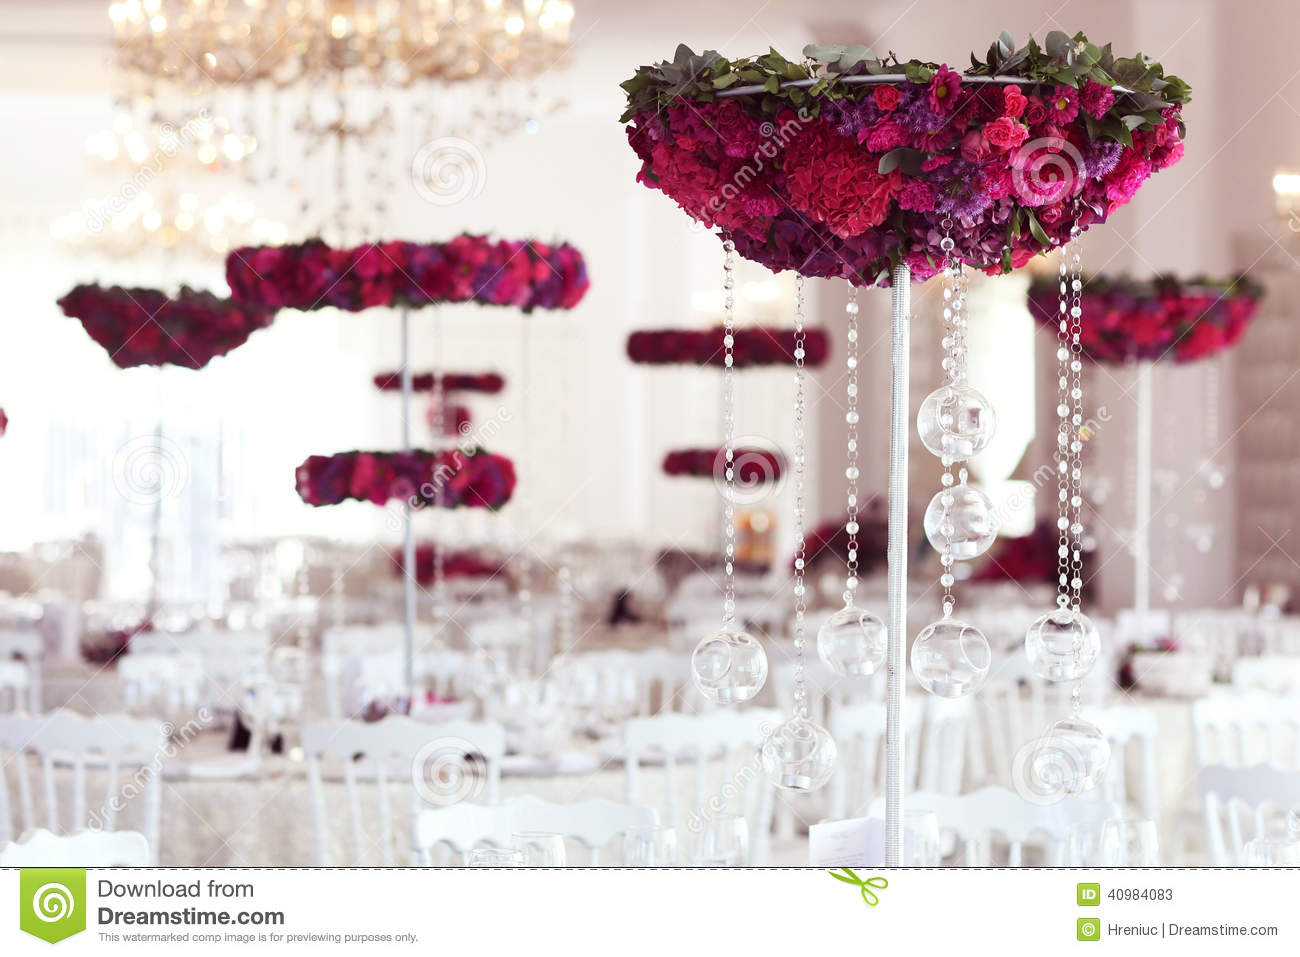 Beautiful flowers on wedding table decoration arrangement stock photo image 40984083 for Photos decoration